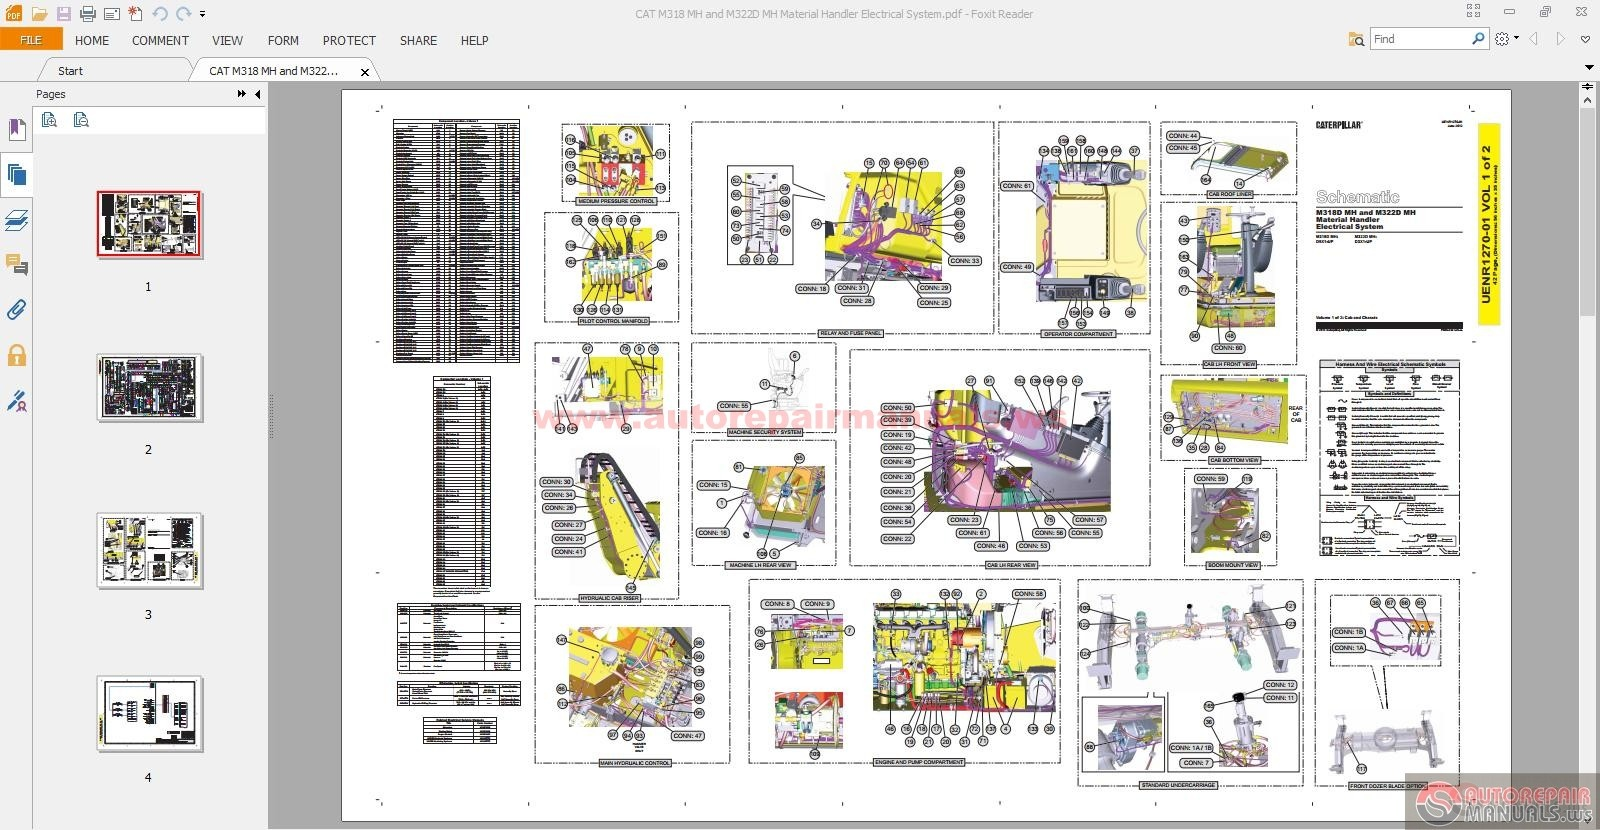 caterpillar wiring diagrams with Caterpillar Wiring Diagram Pdf on Caterpillar SIS ET FLASH 2009 likewise Doosan Forklift Wiring Diagram in addition 12428 besides Cb750k1 wiring diagram together with Cat C15 Acert Wiring Diagram.